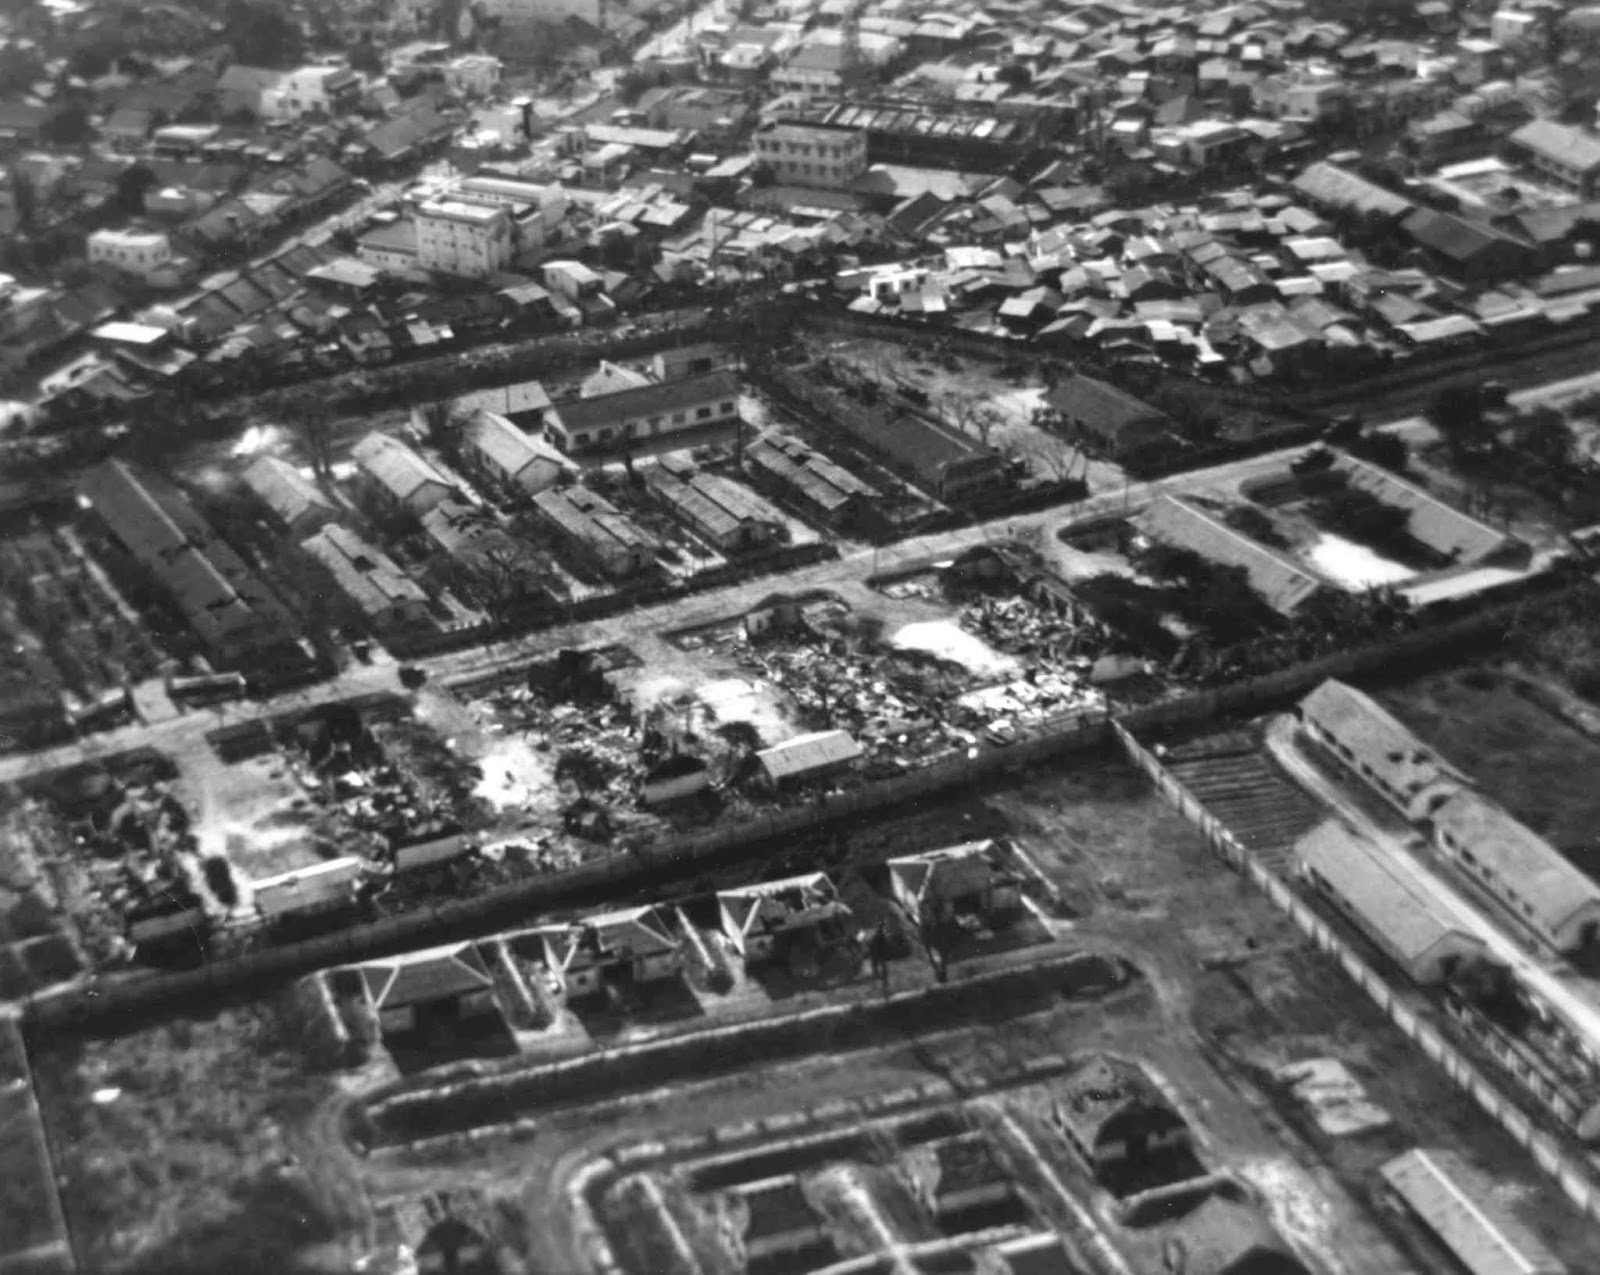 1968 SAIGON Aerial View